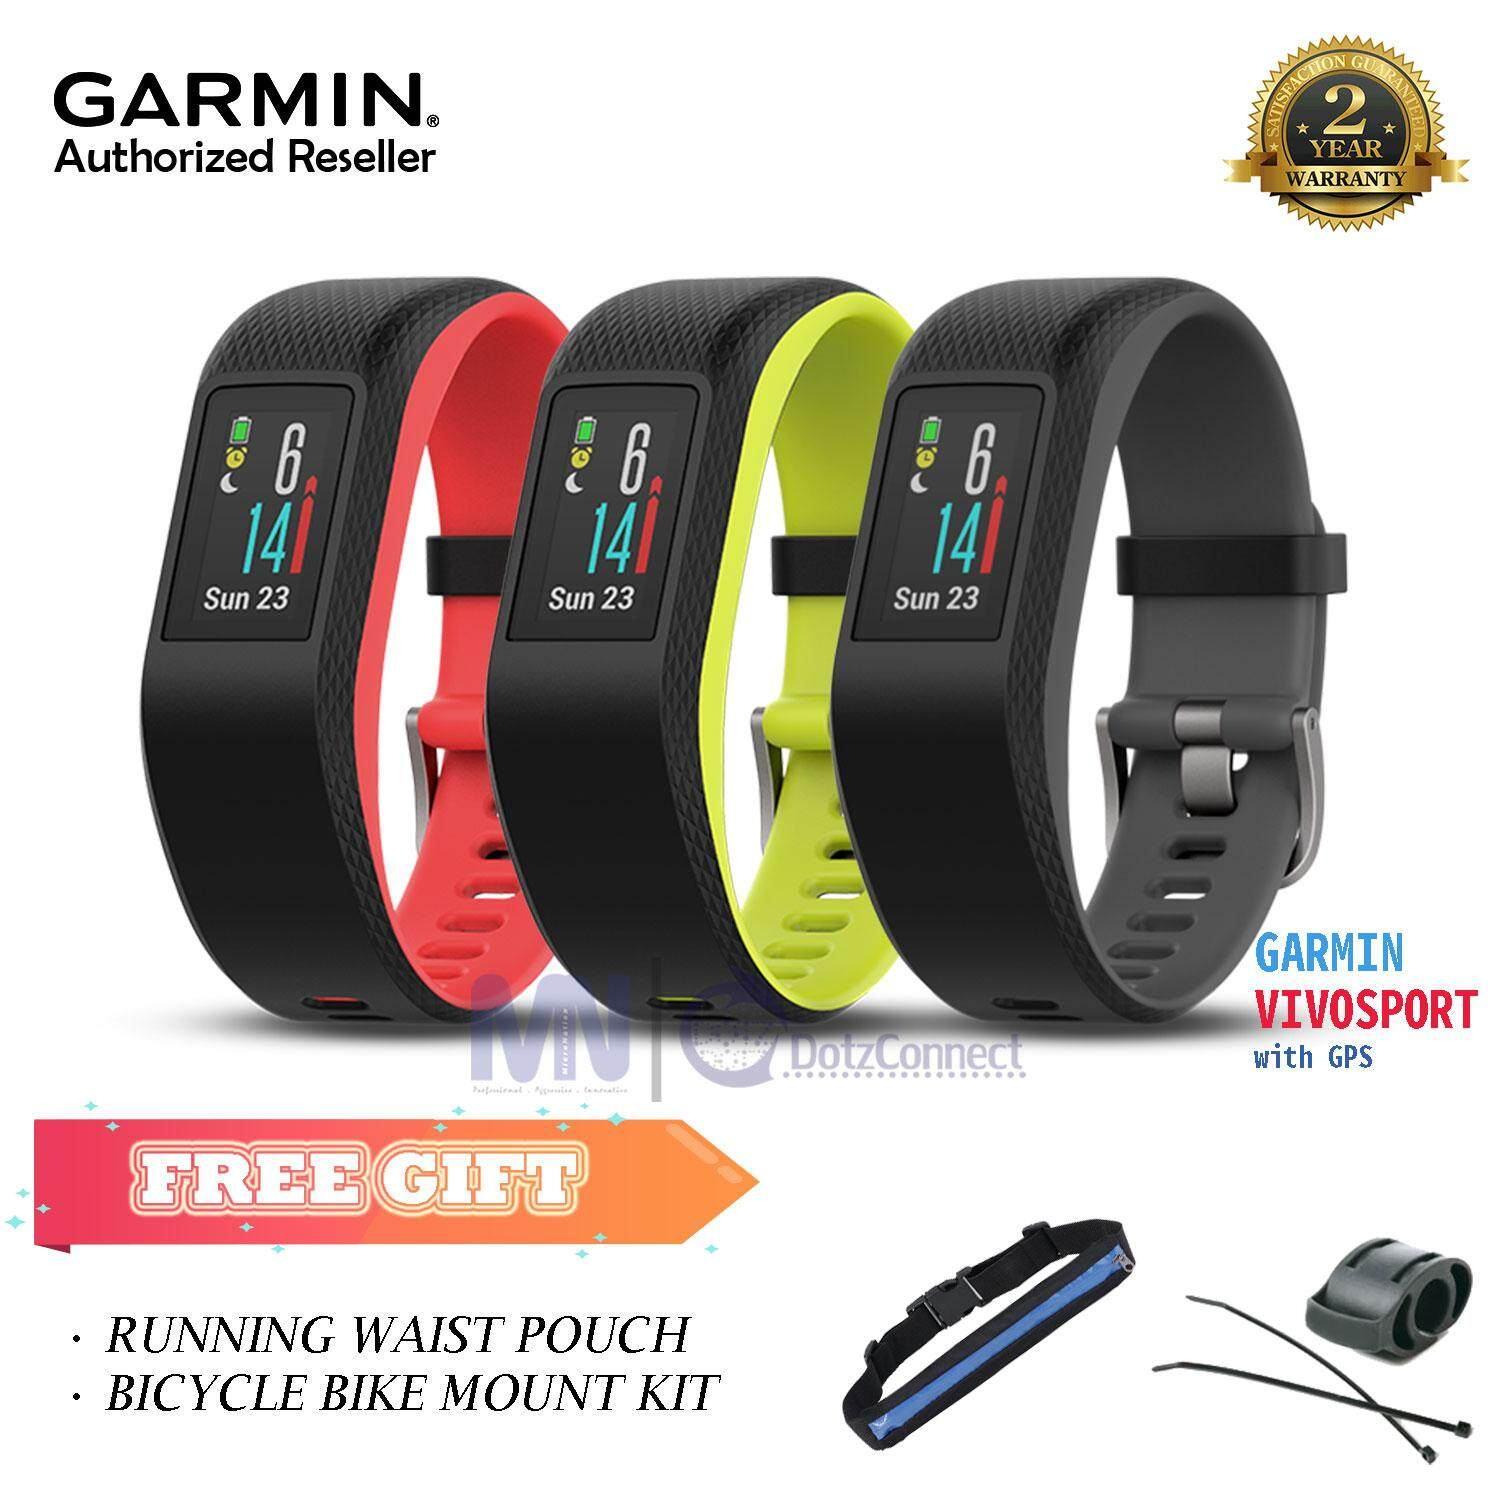 Garmin Vivosport Smart Activity Tracker with Wrist-based Heart Rate and GPS